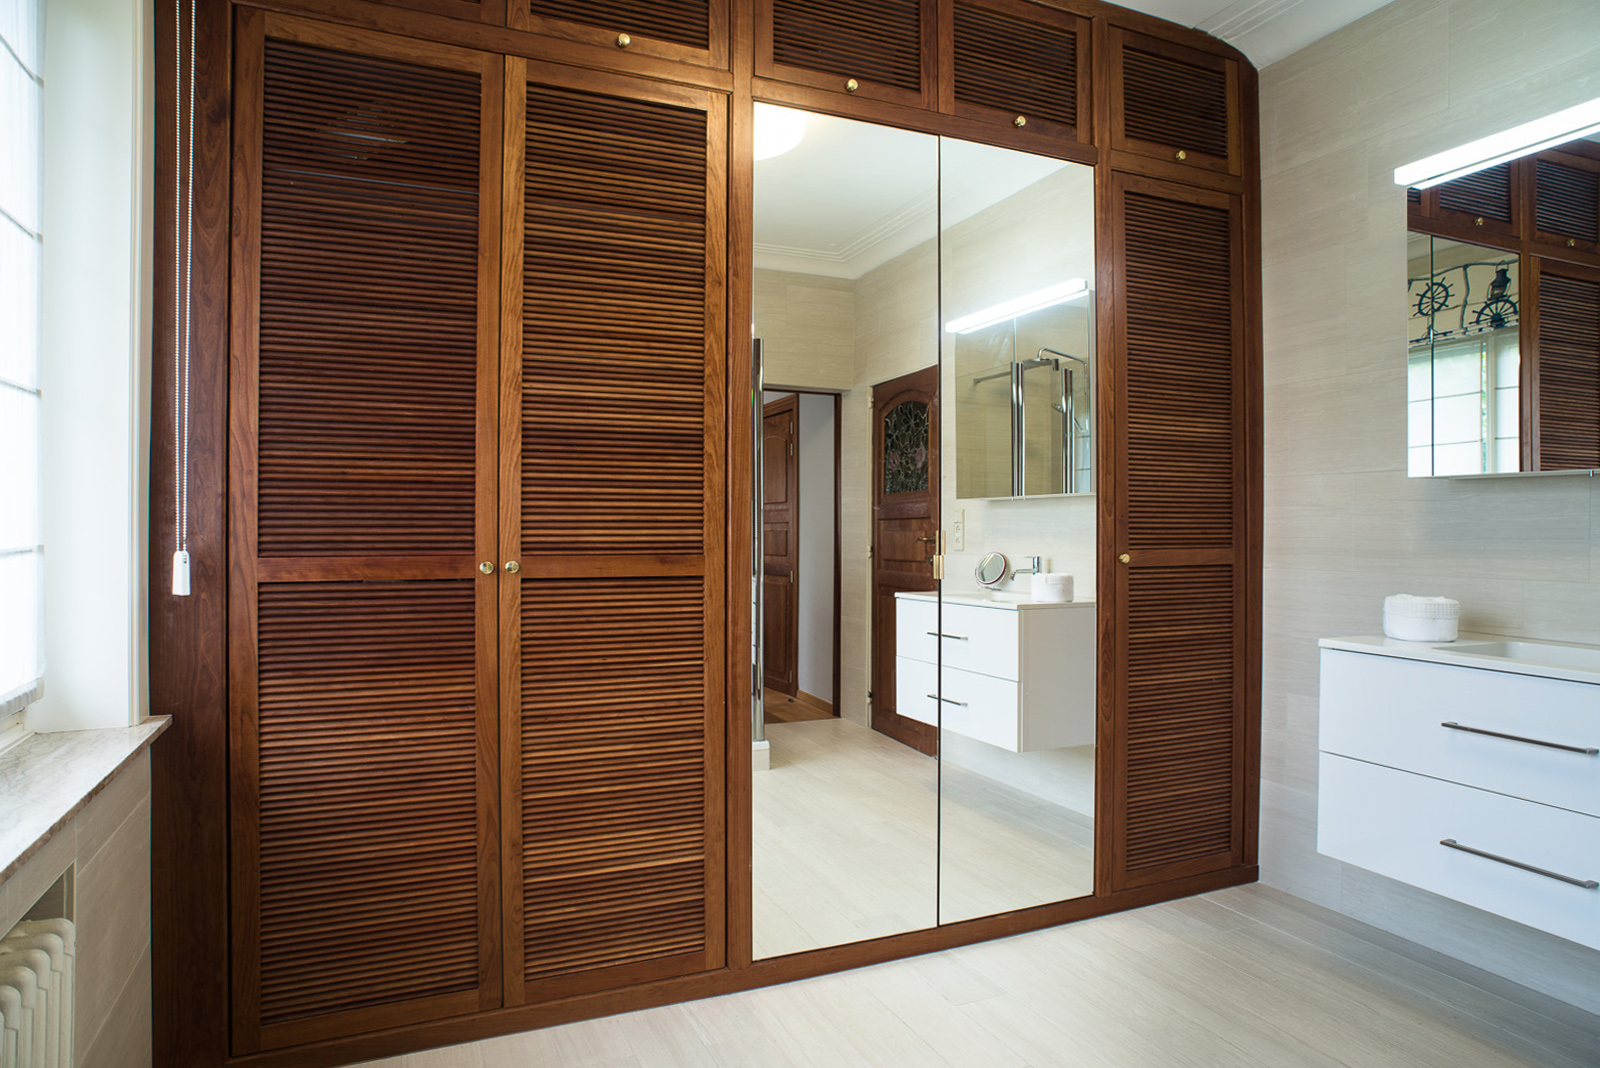 Cherry wood bathroom wardrobe